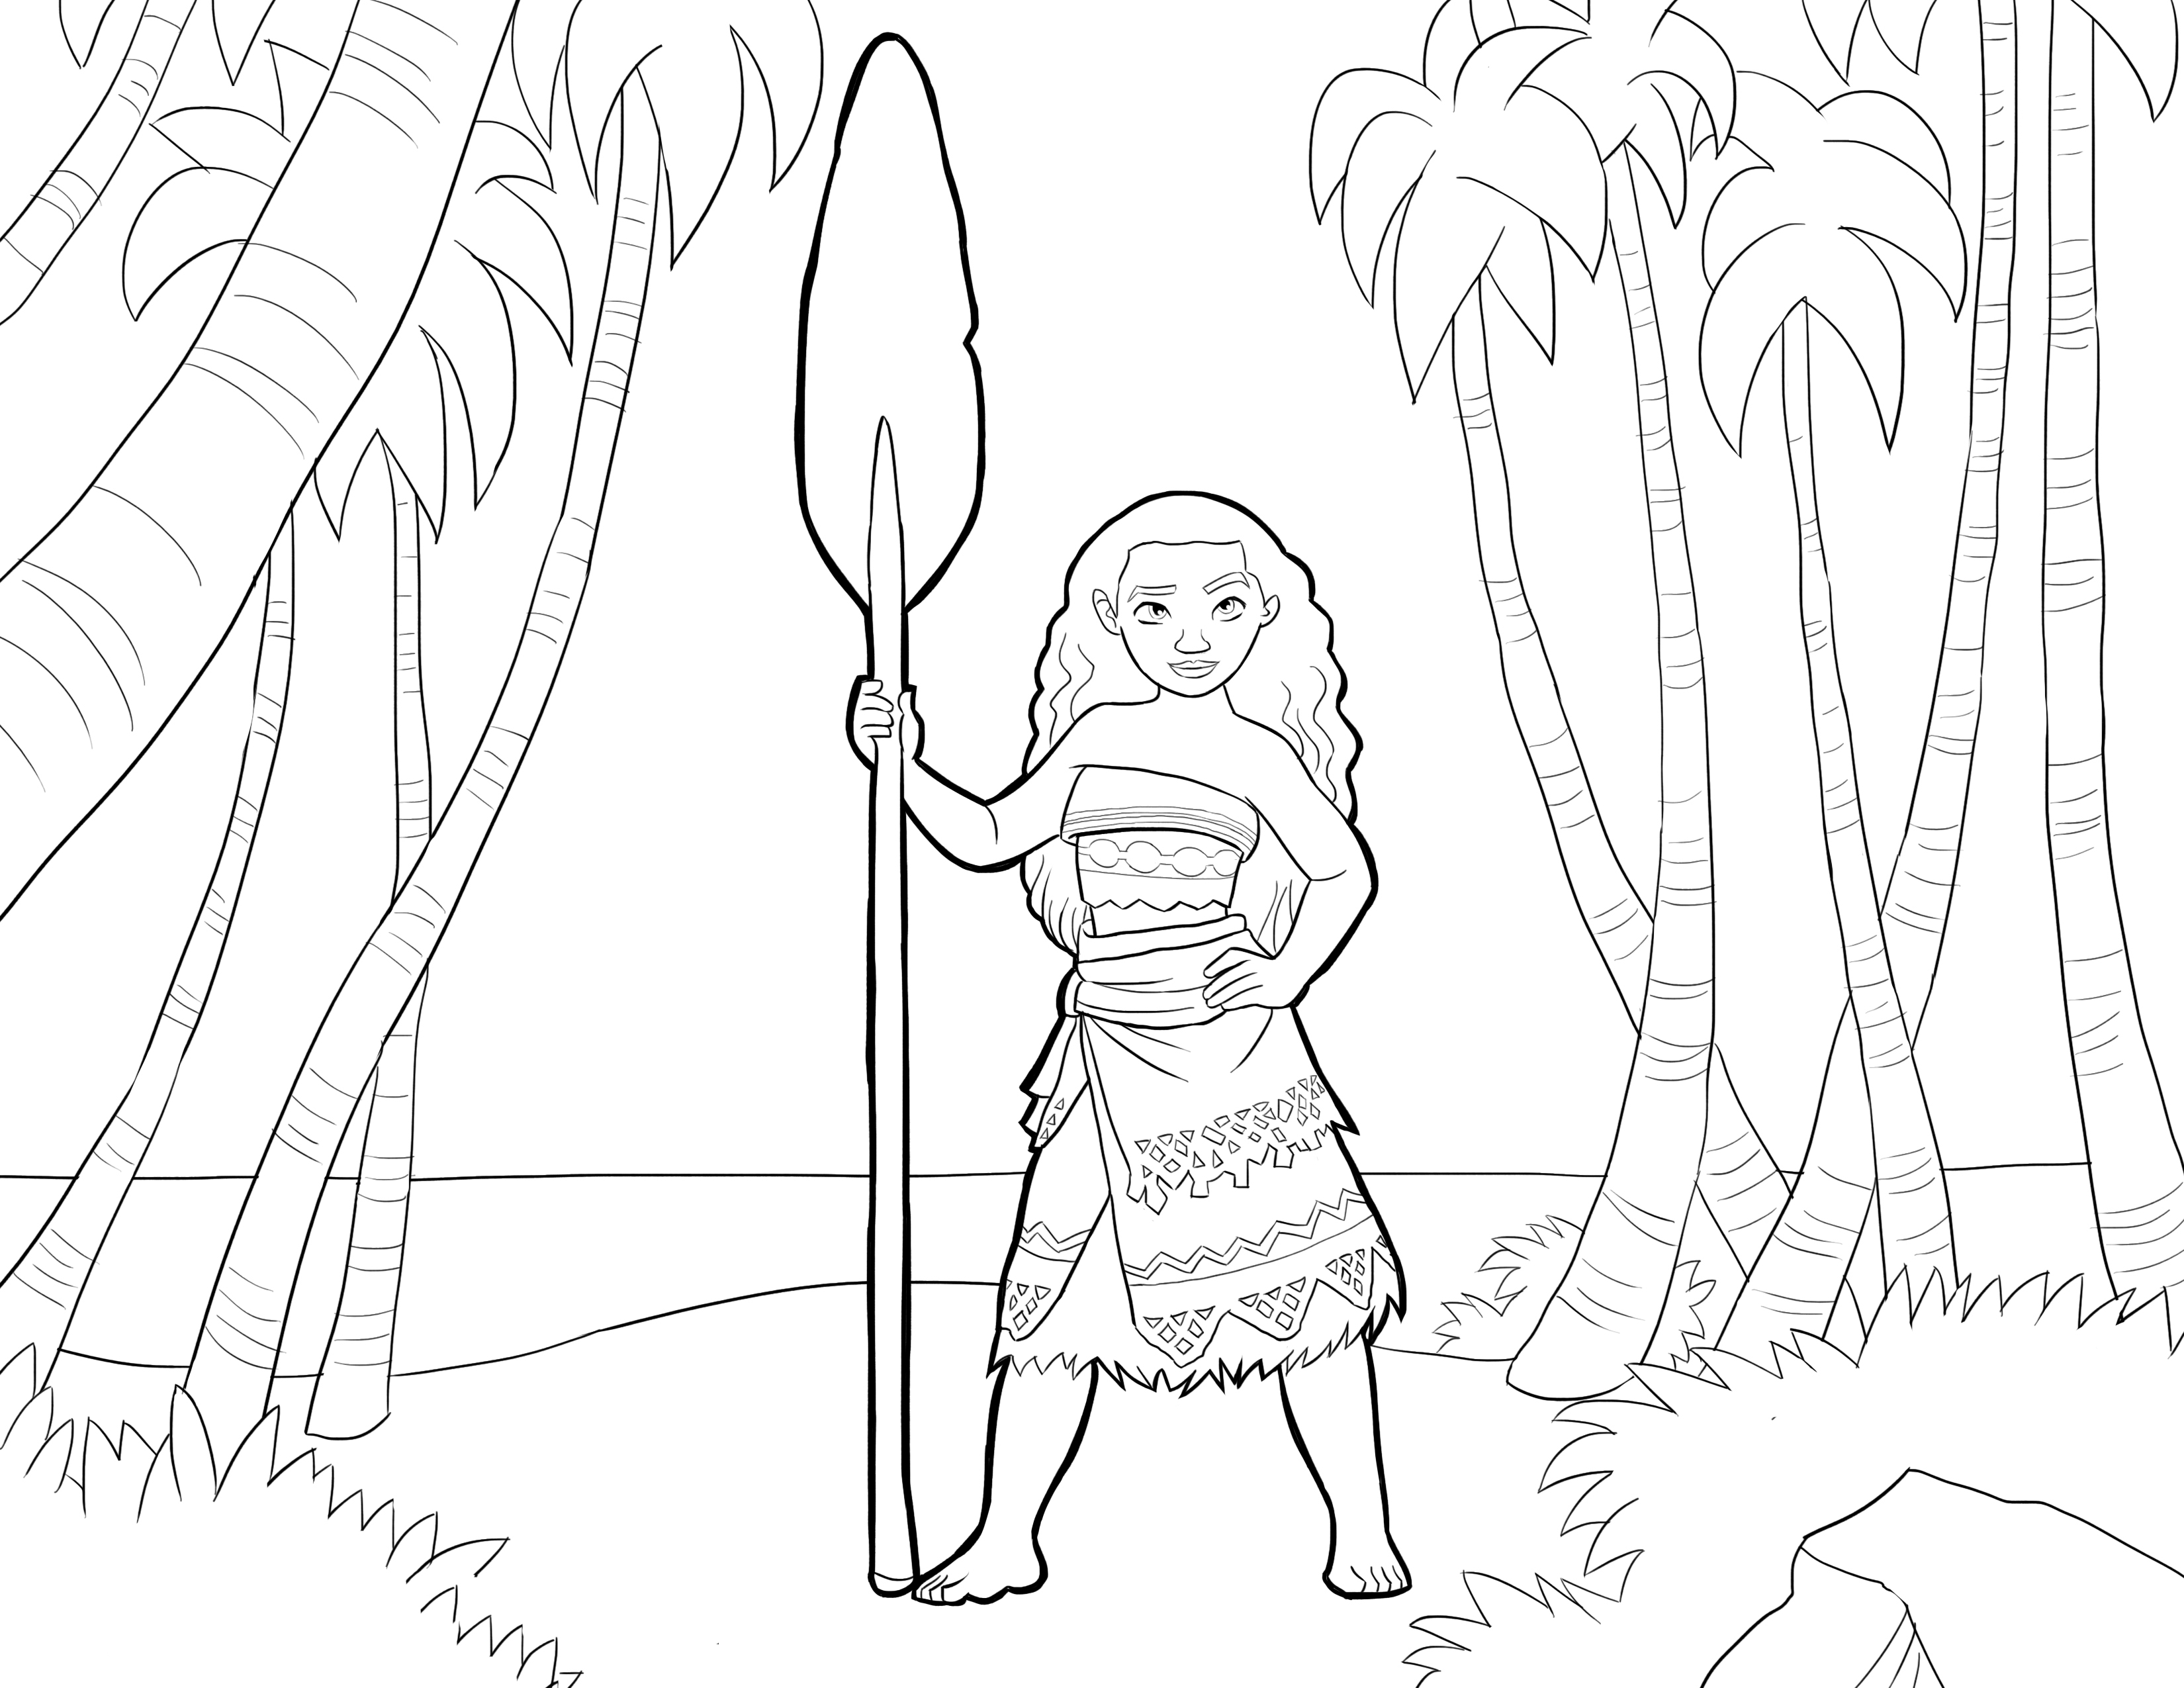 Moana coloring pages to download and print for free